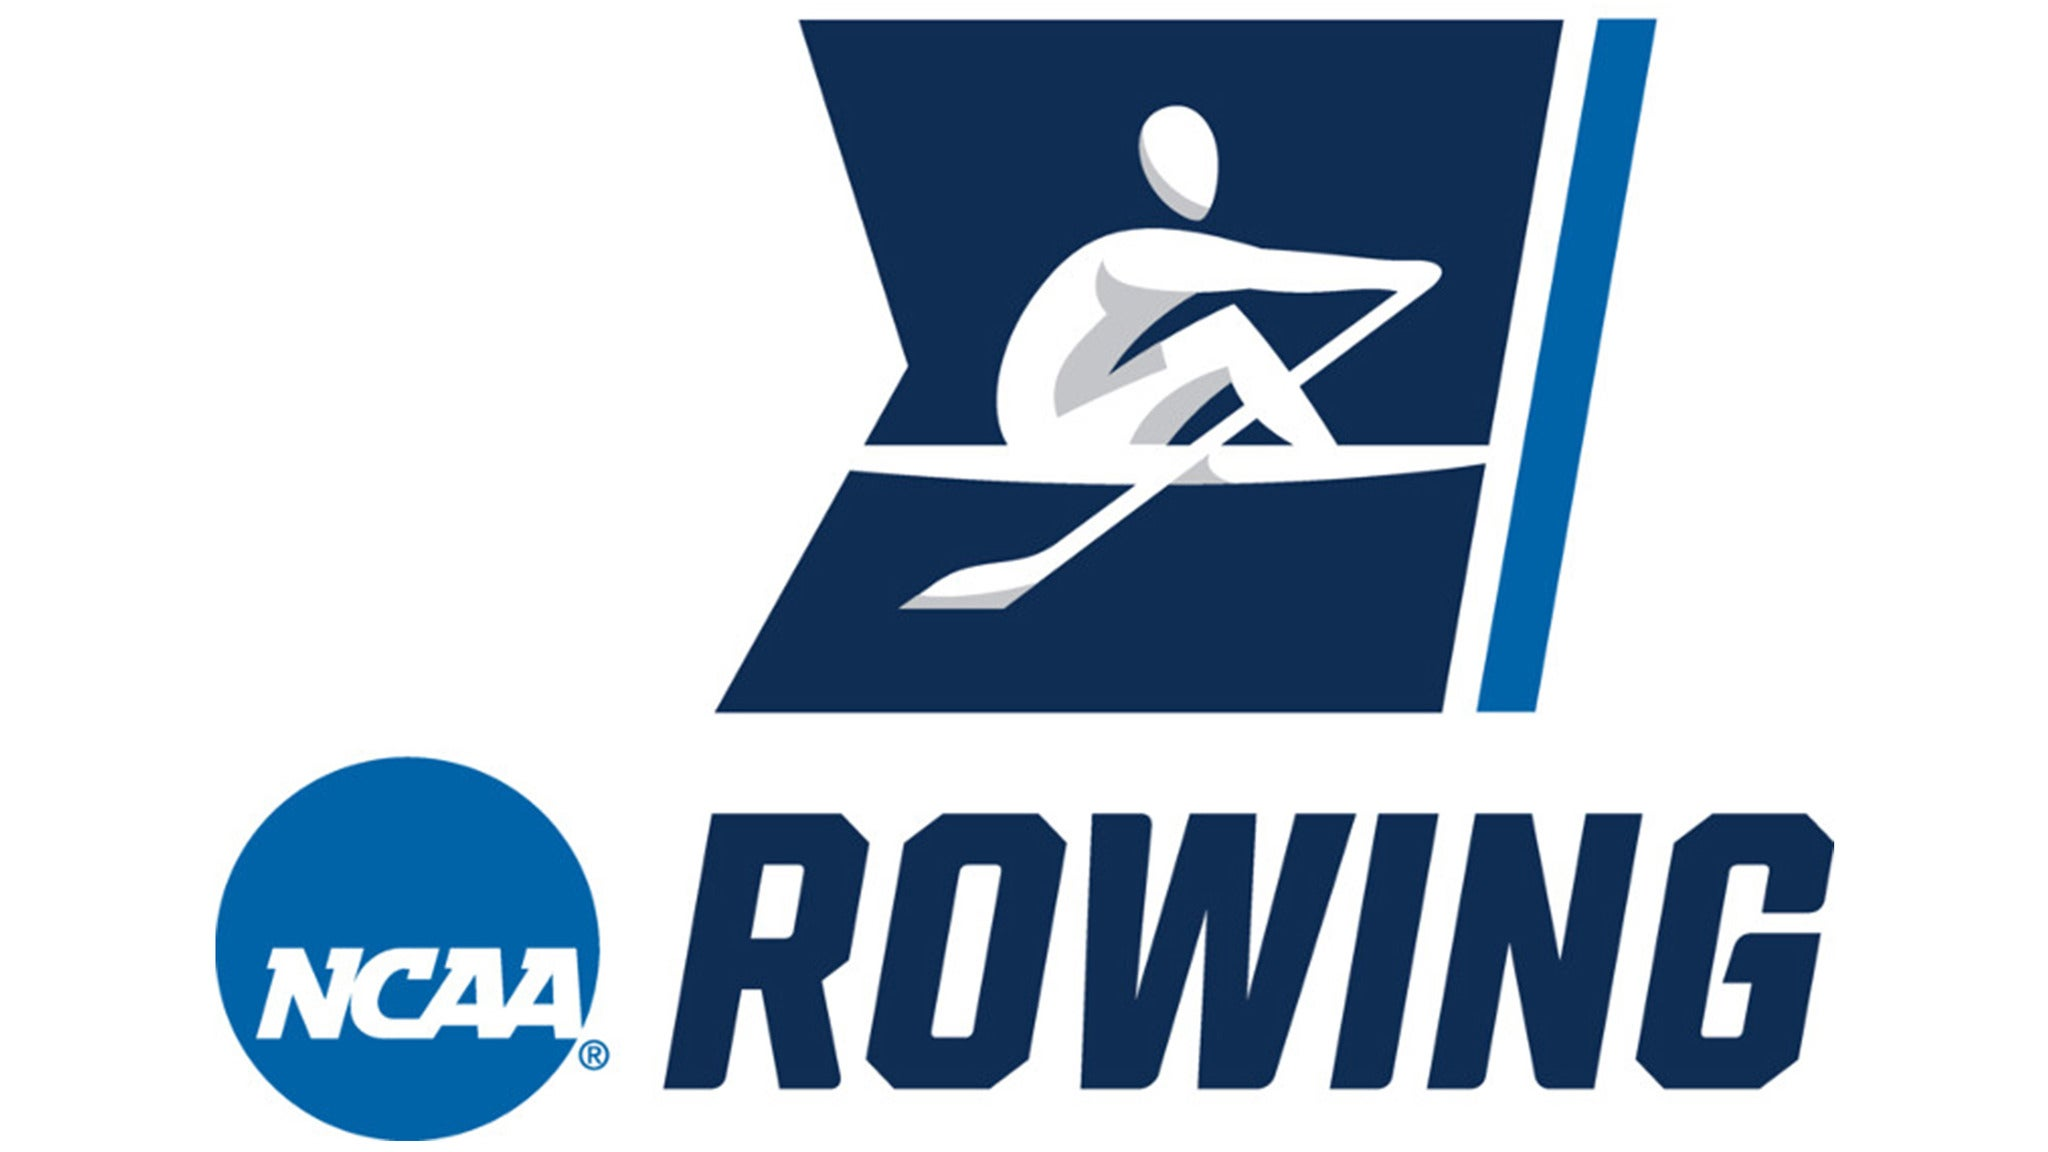 2019 NCAA Rowing Championships